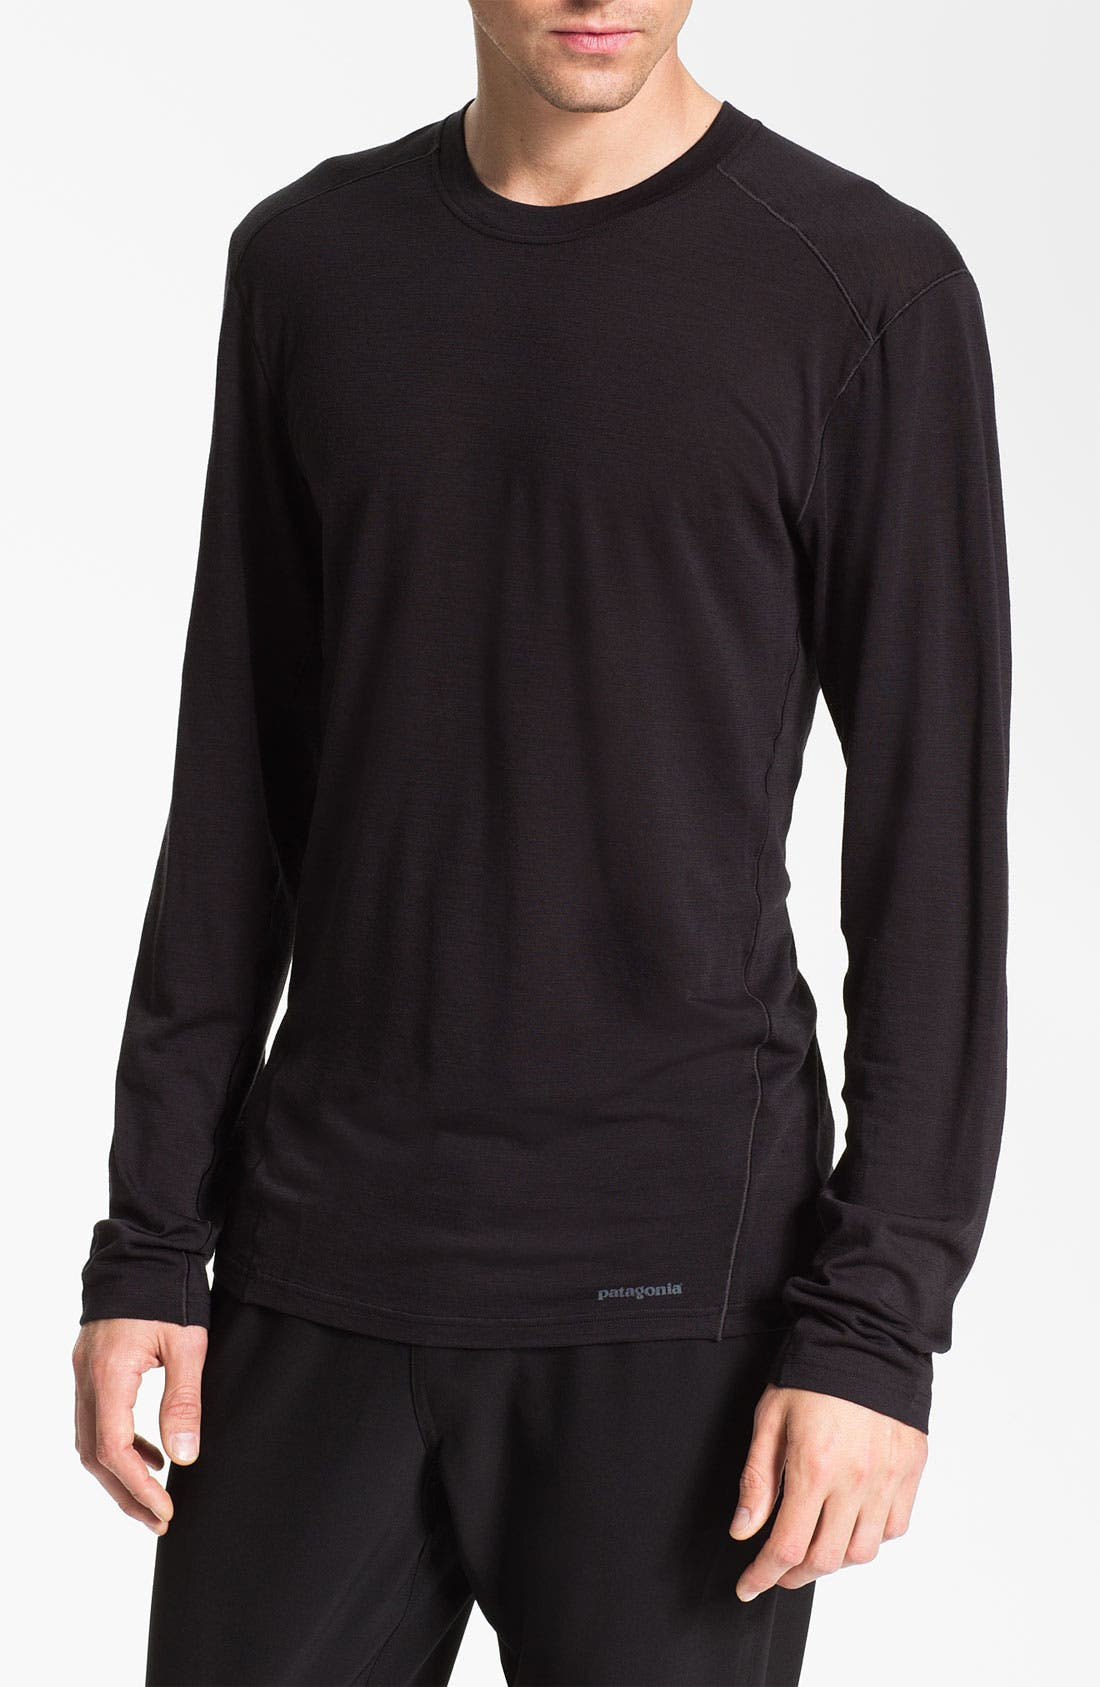 Alternate Image 1 Selected - Patagonia 'Merino® 1' Long Sleeve T-Shirt